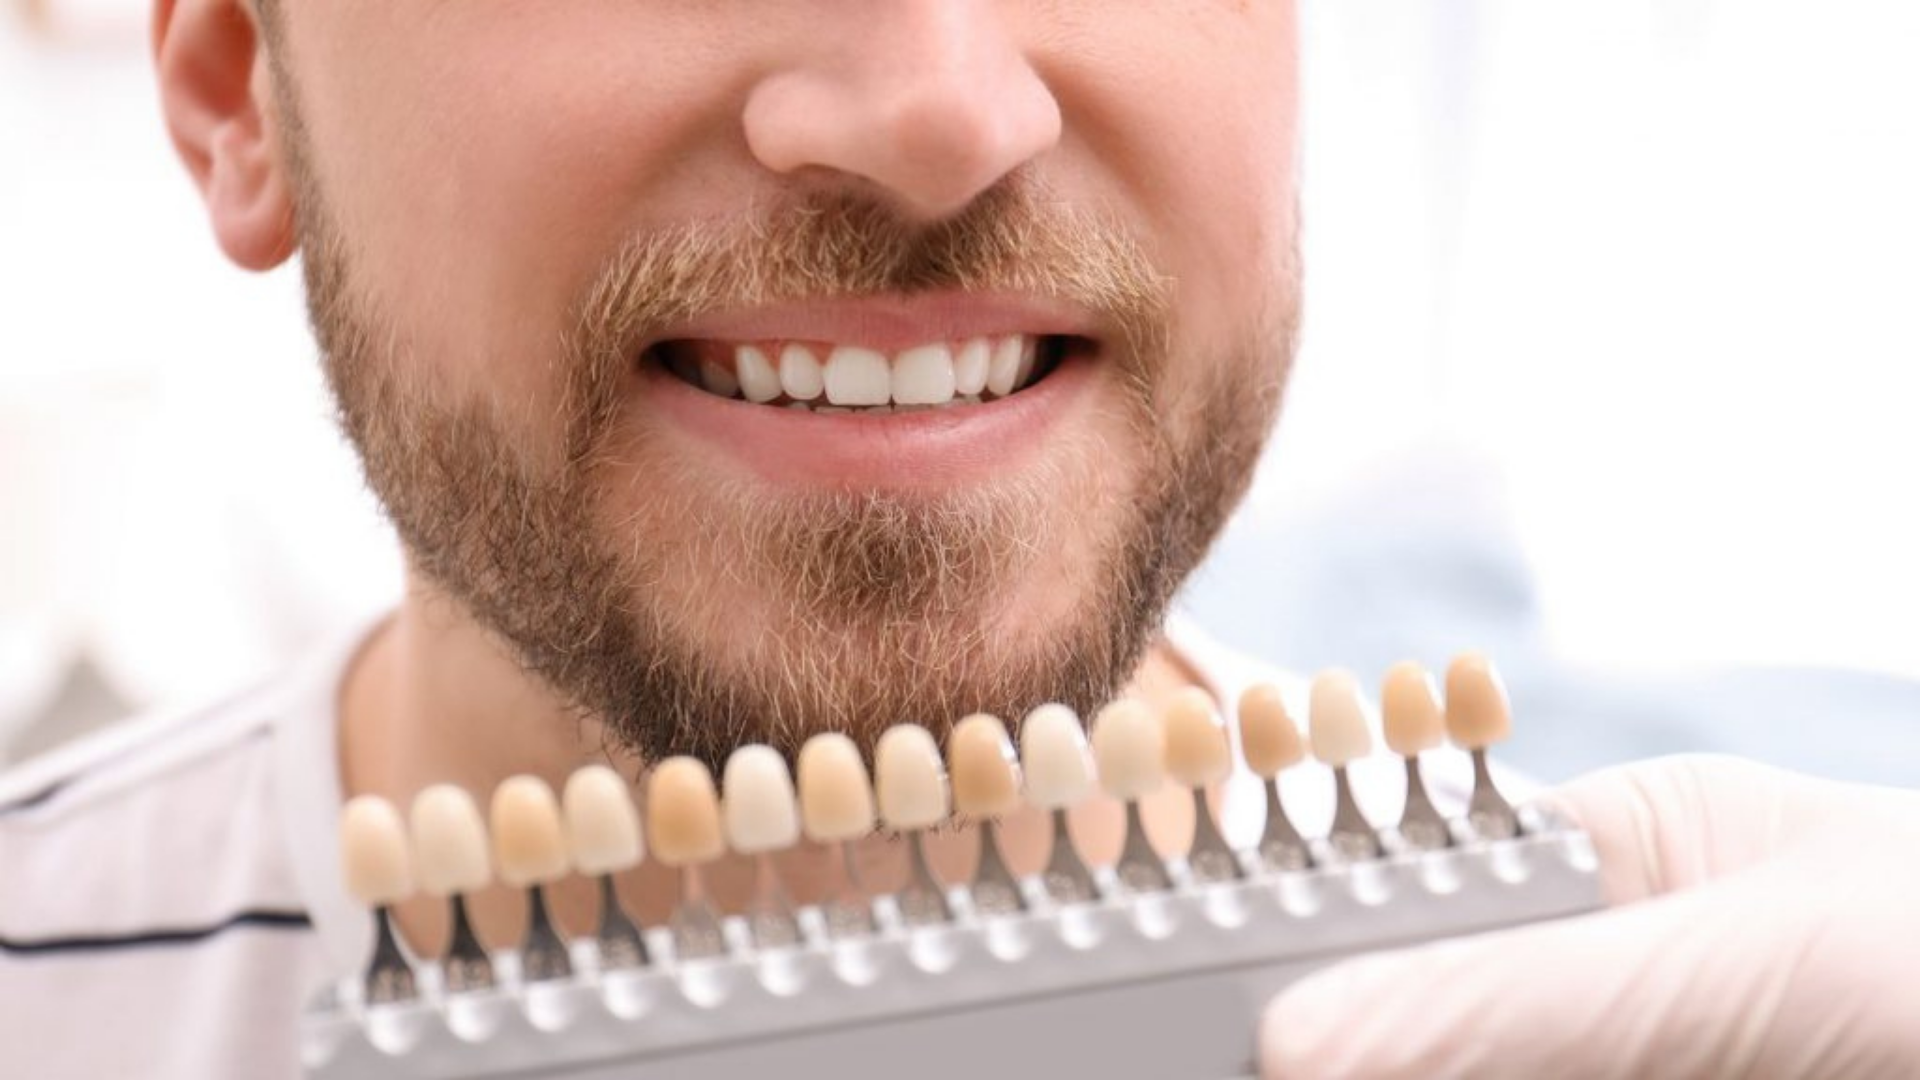 How long does professional teeth whitening last